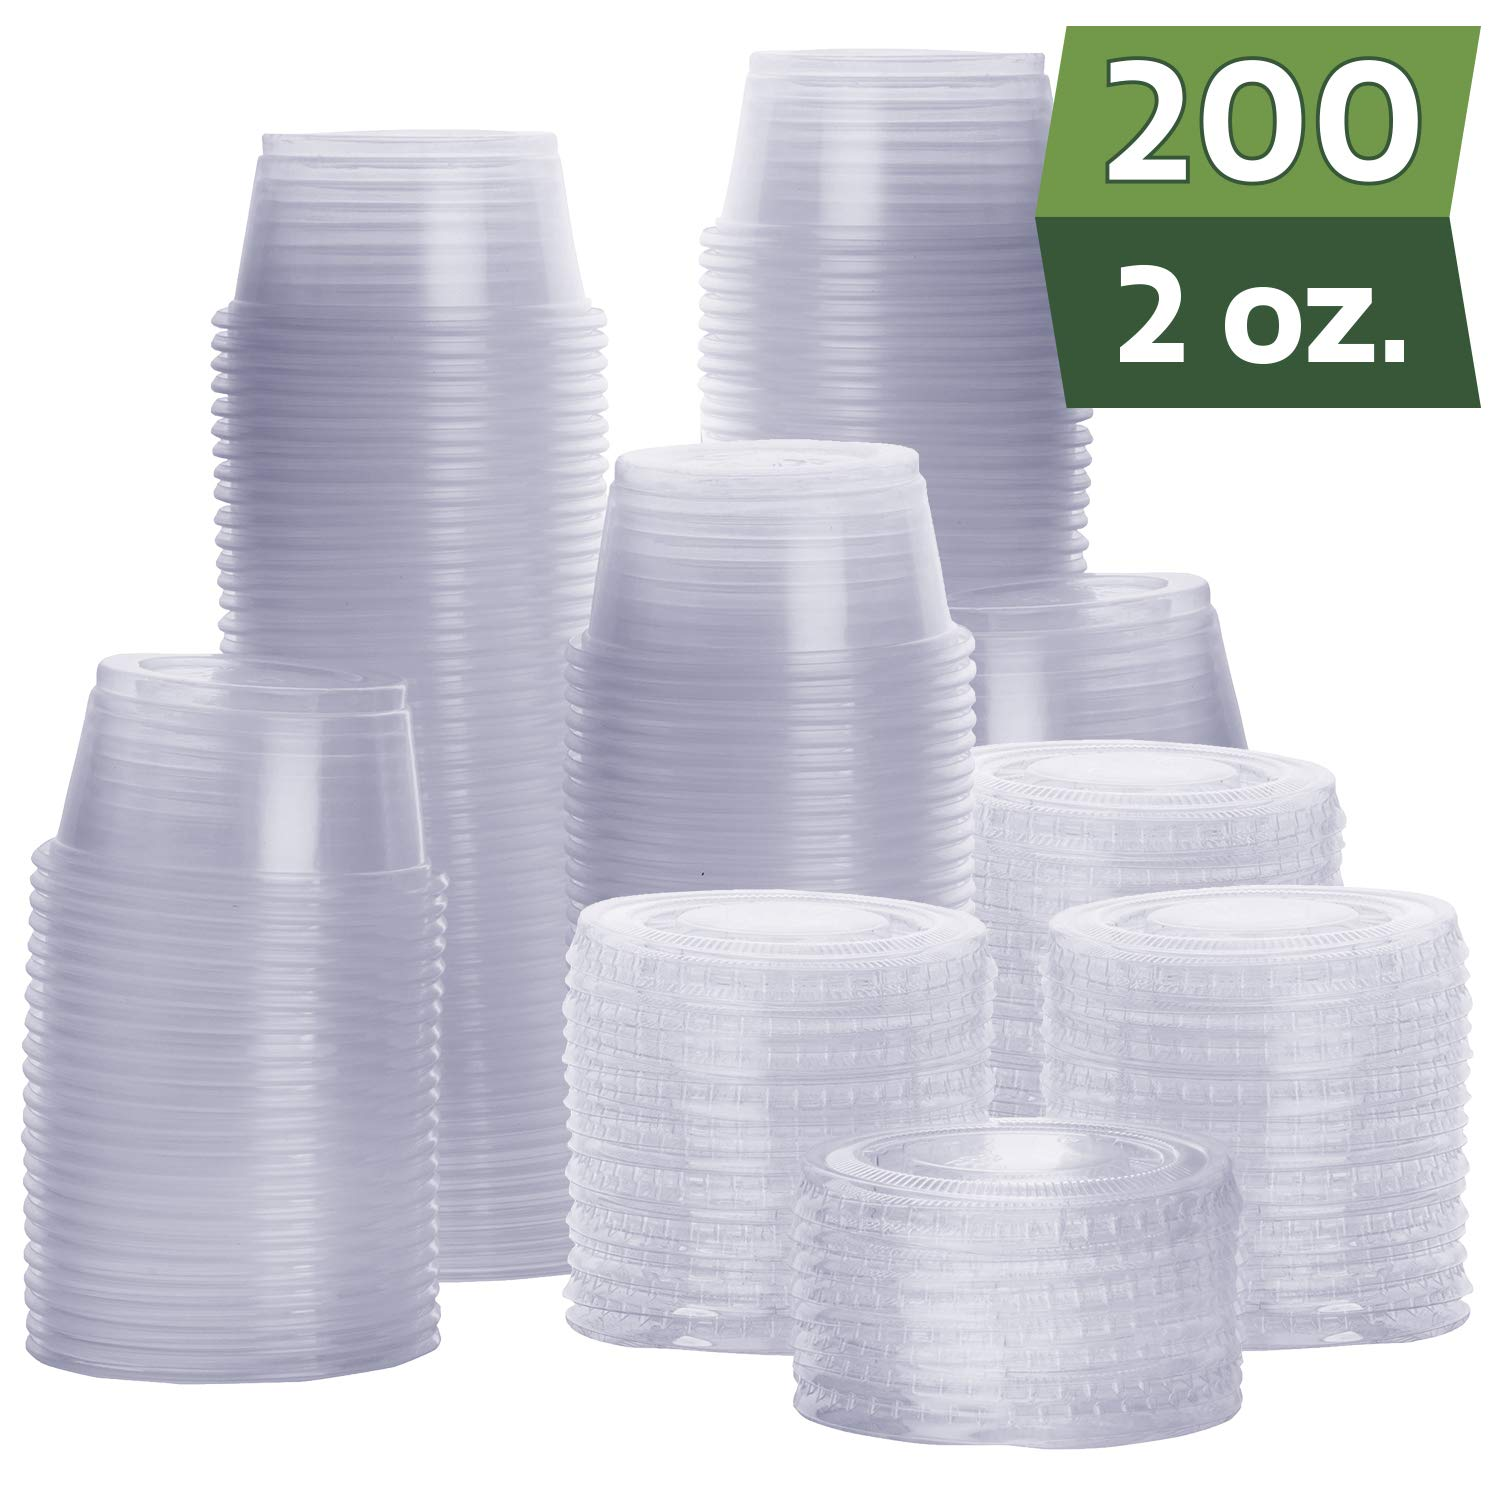 [200 Sets - 2 oz.] Plastic Portion Cups With Lids, Souffle Cups, Jello Shot Cups, Condiment Sauce Containers by Comfy Package